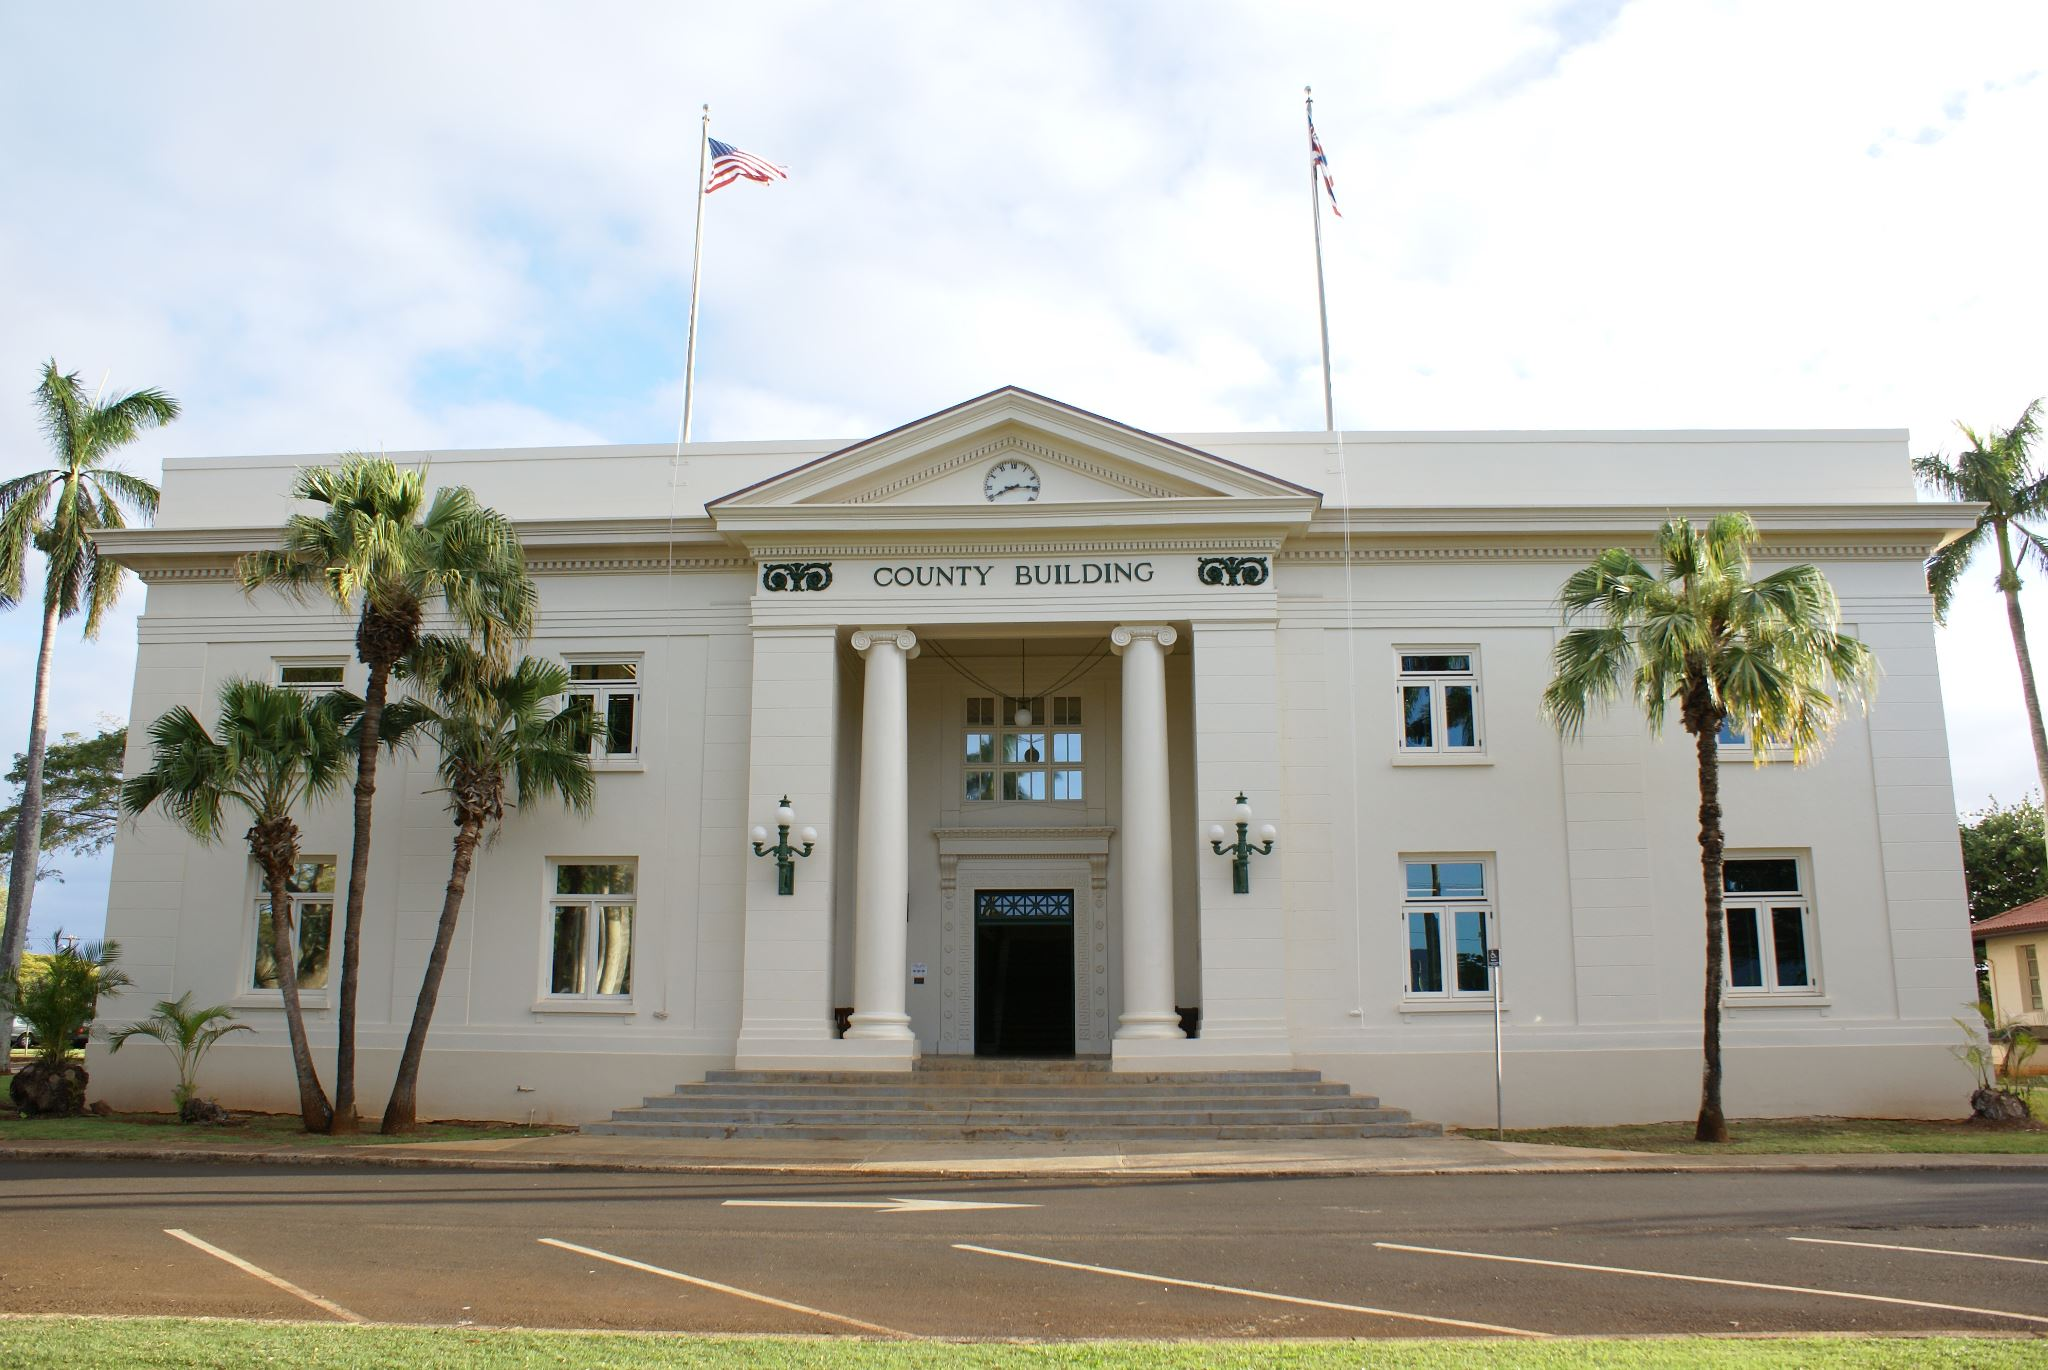 Historic County Building